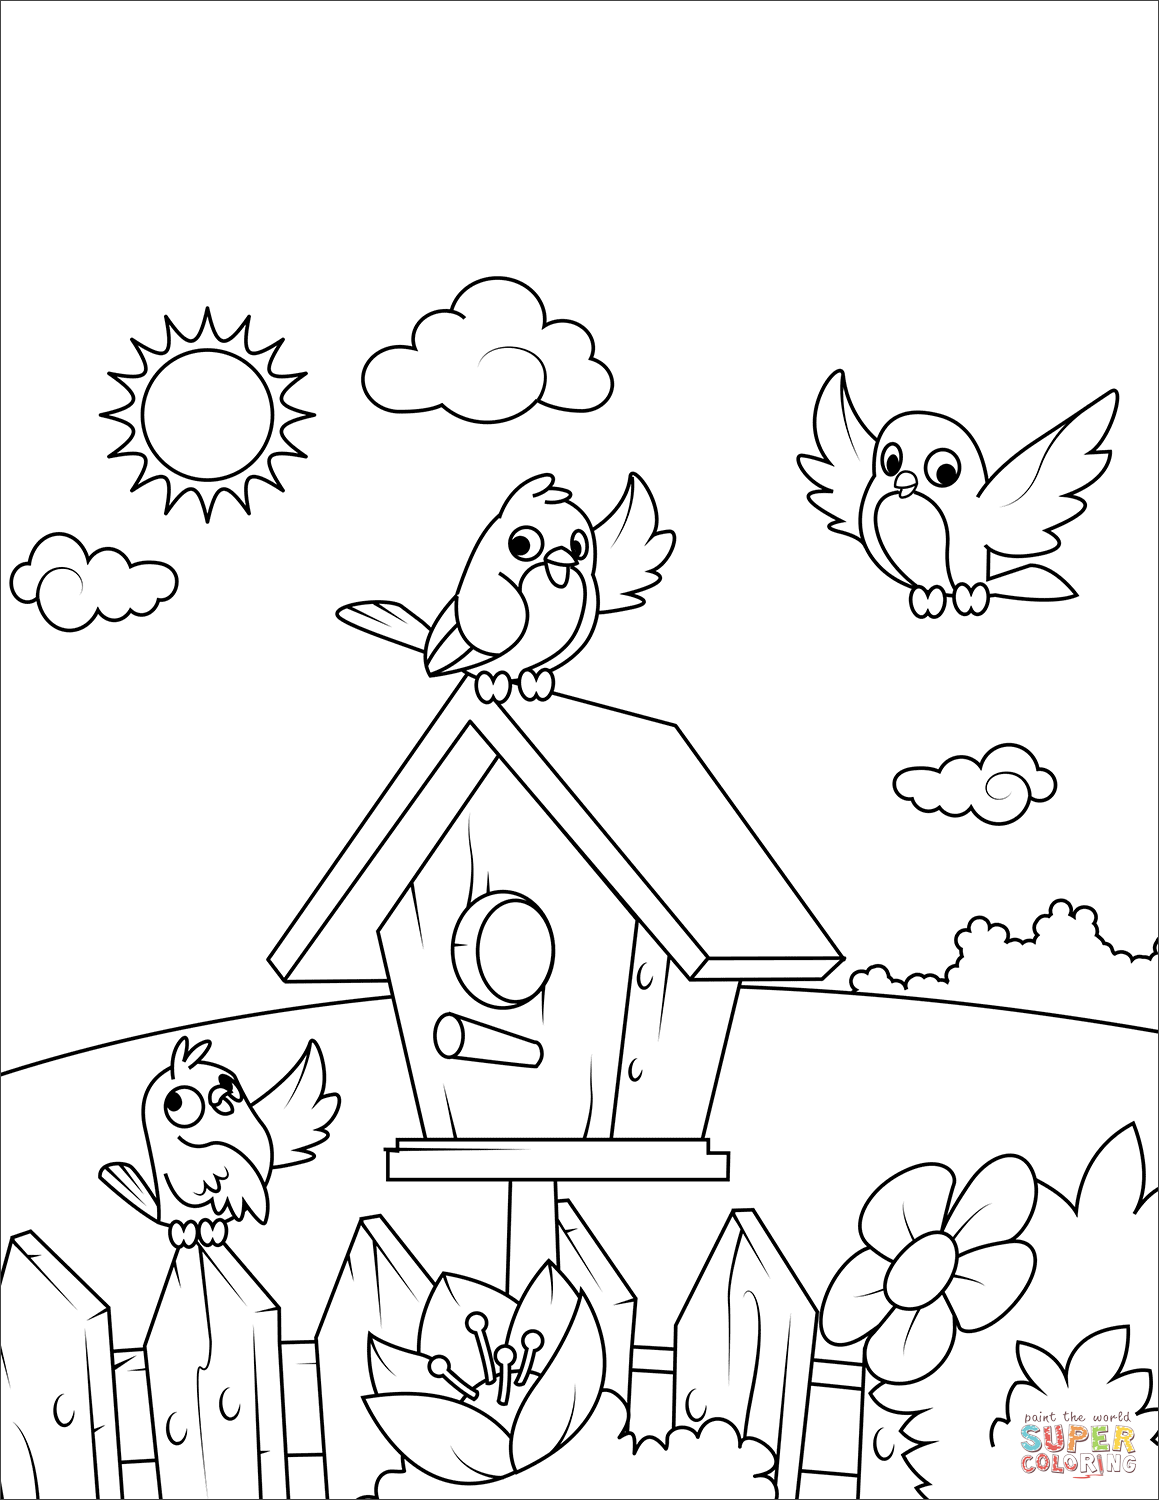 Raggedy Ann Coloring Pages | raggedy ann andy coloring page ... | 1500x1159